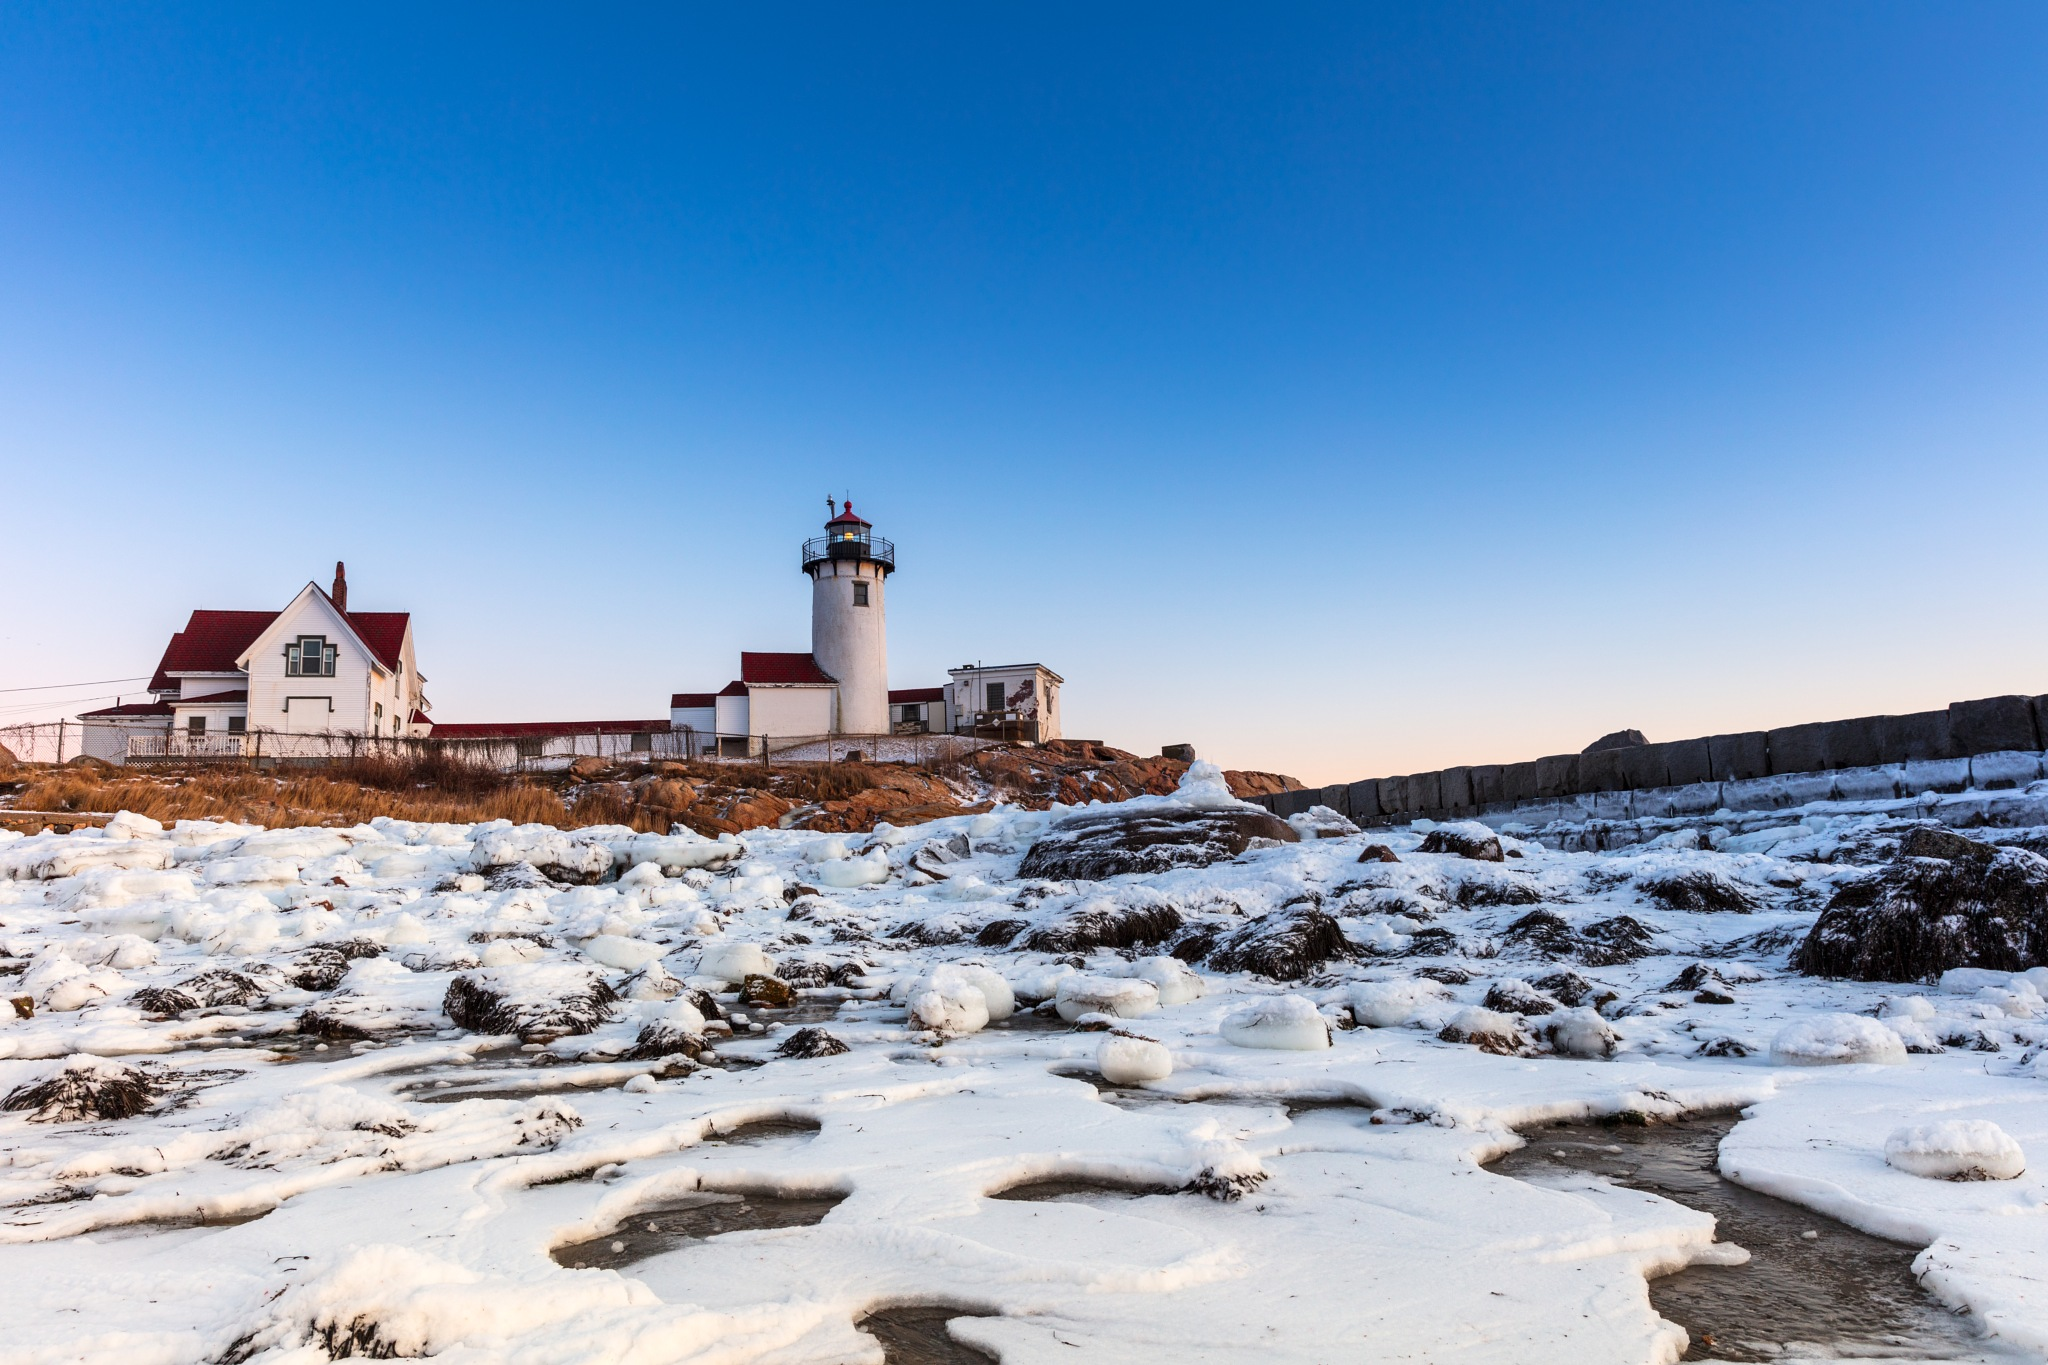 Lighthouse in the Snow by kpharney